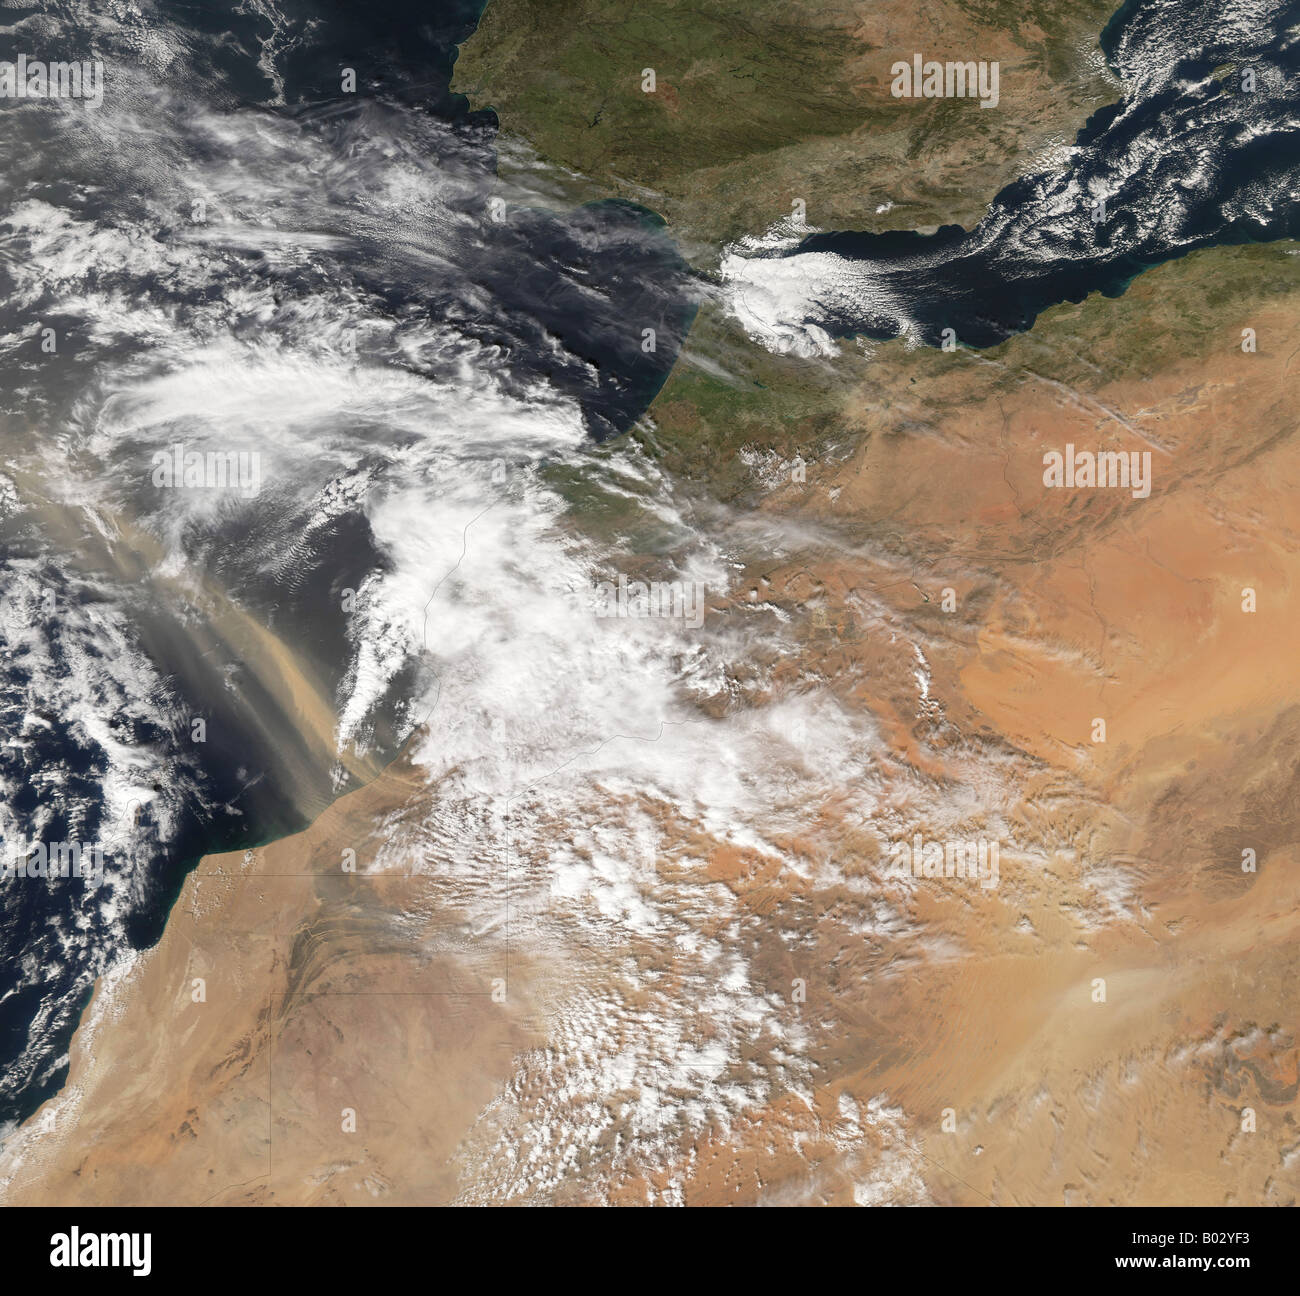 Dust plumes blowing off the Moroccan coast. - Stock Image